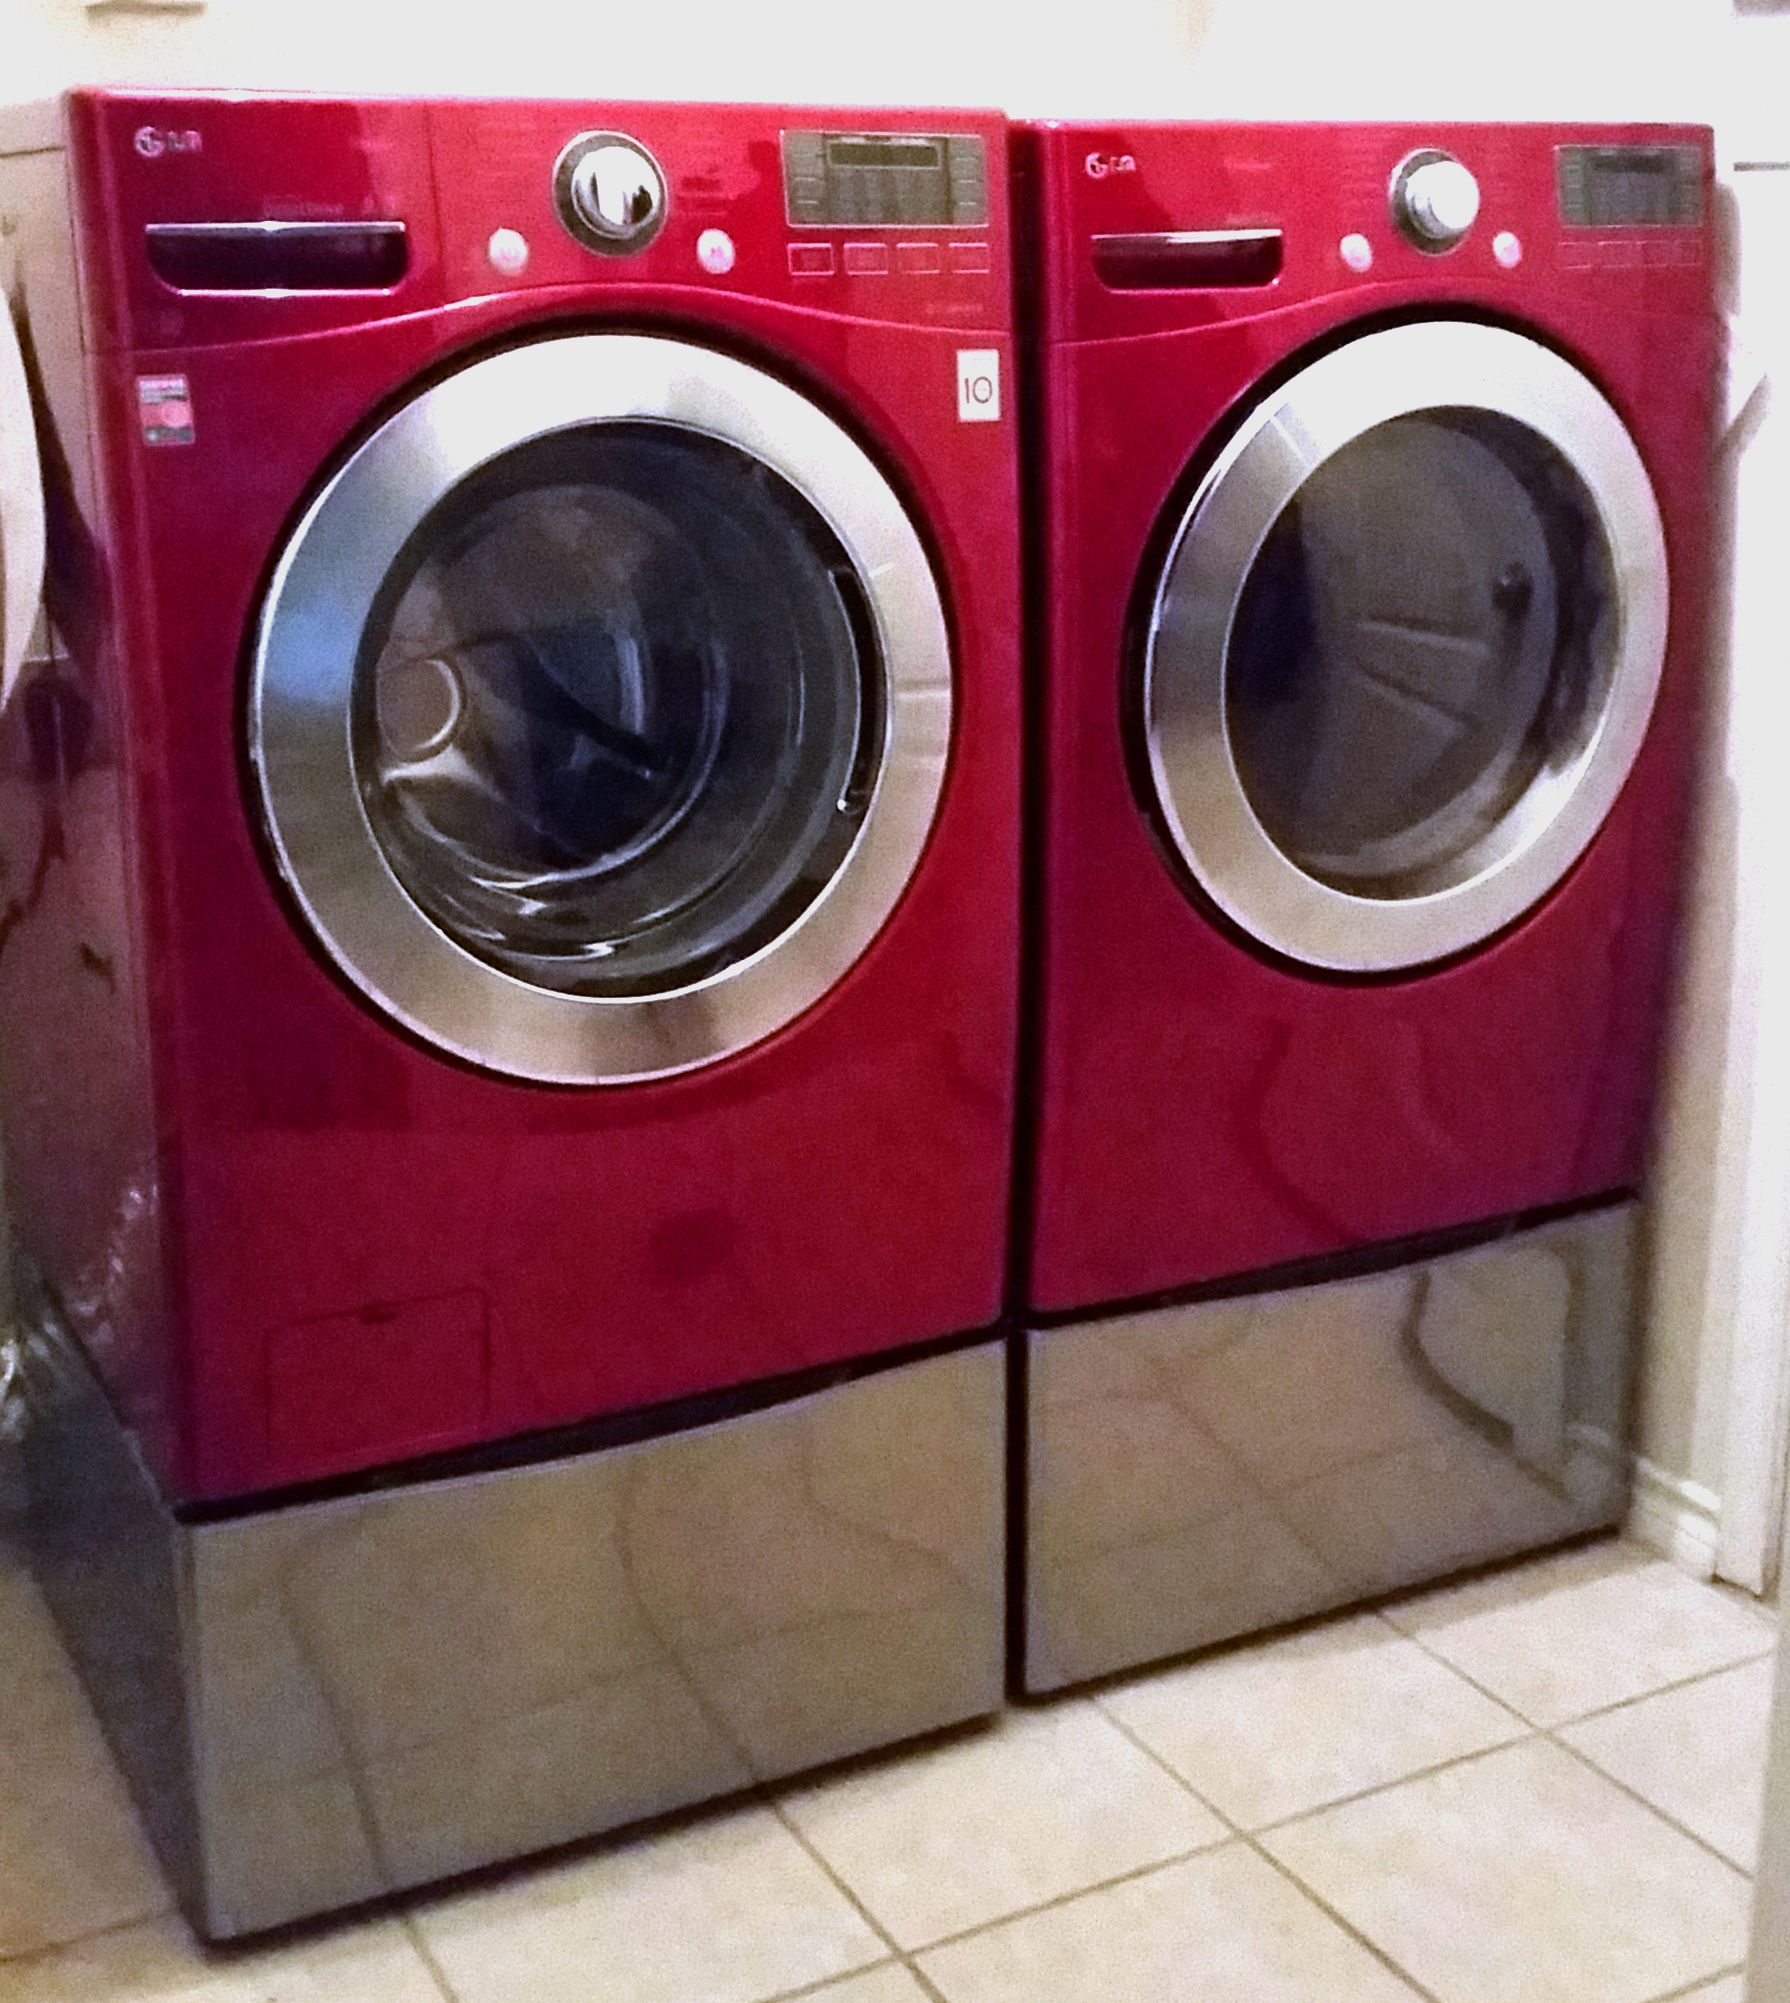 Cherry Red Lg Washer And Dryer With Graphite Pedestals Red Washer And Dryer Laundry Pedestal Laundry